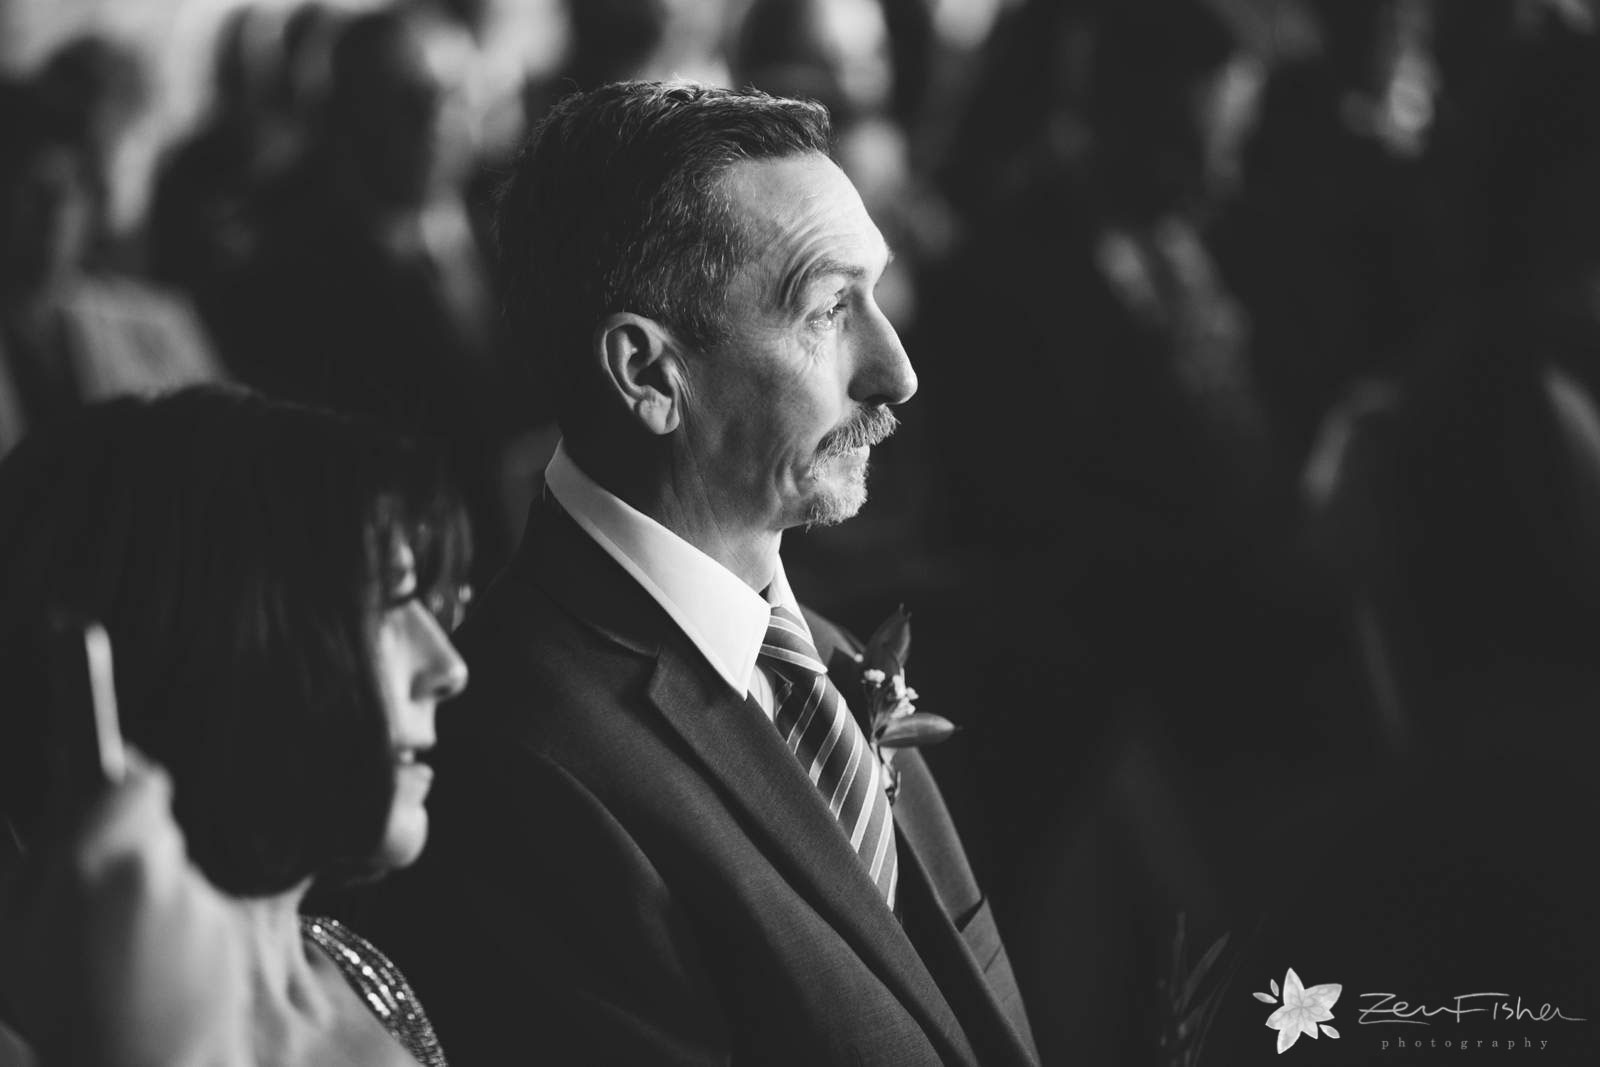 Father of the groom's reaction during ceremony, father of the groom tearing up, black and white.